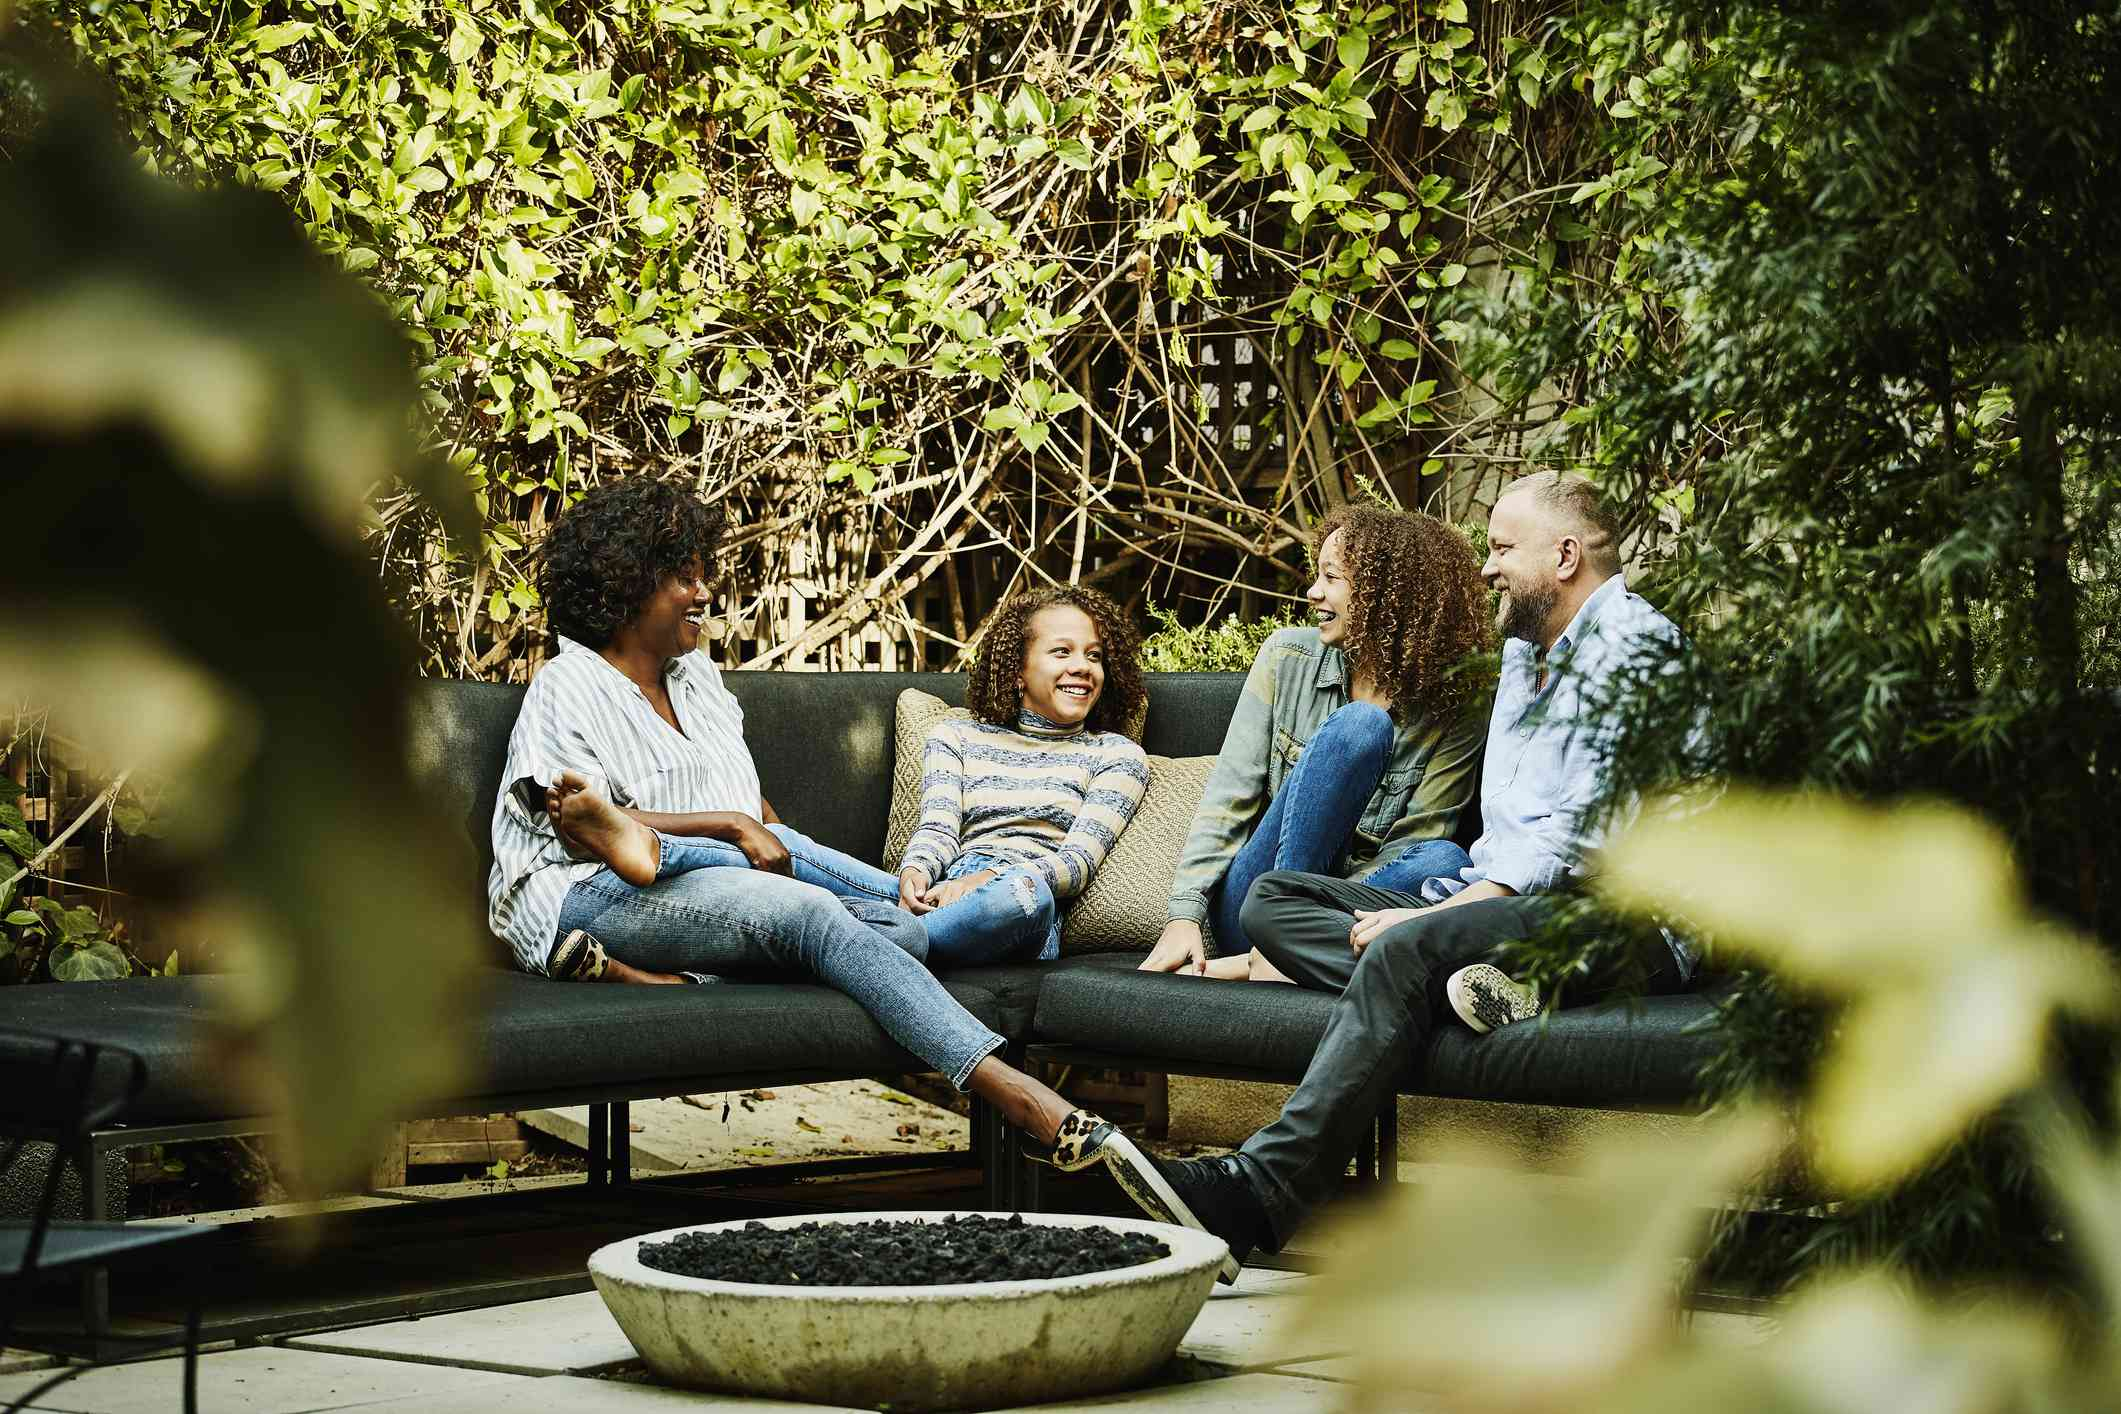 Smiling family hanging out by fire pit in backyard